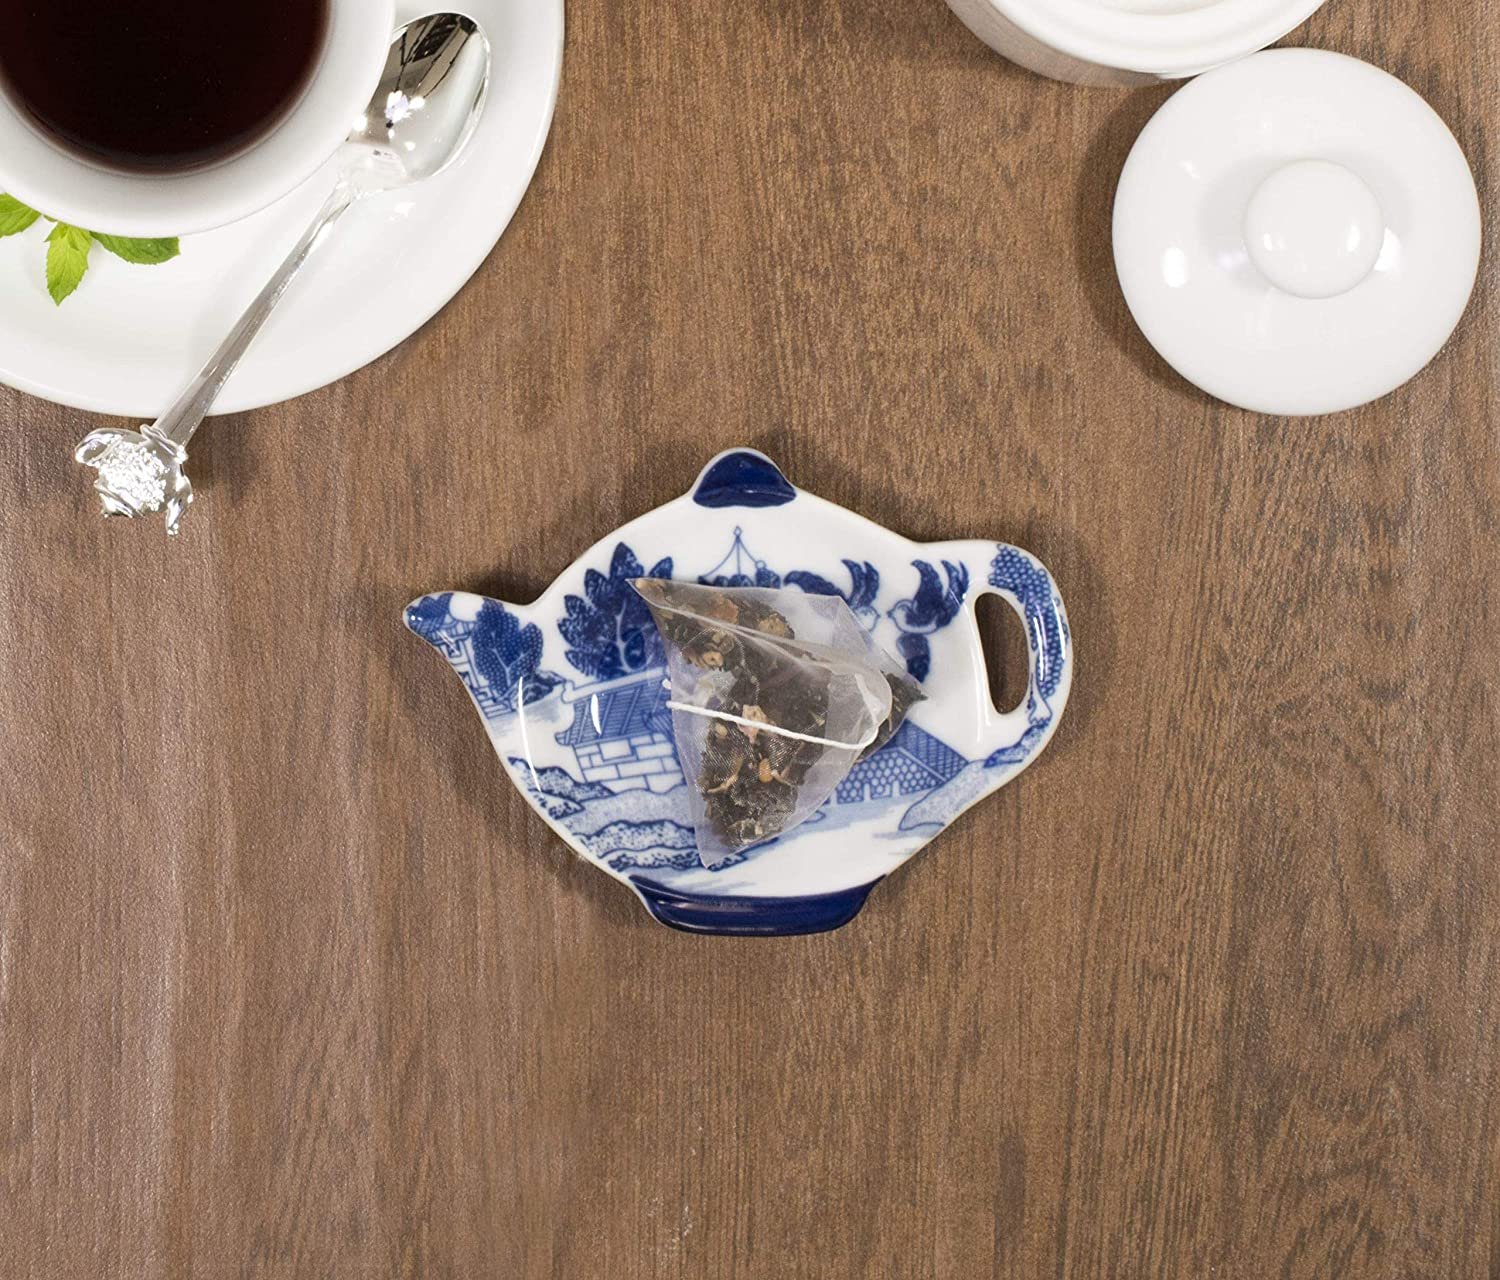 3.5-Inches Fine-Quality Porcelain HIC Blue Willow Tea Bag Holder Caddy